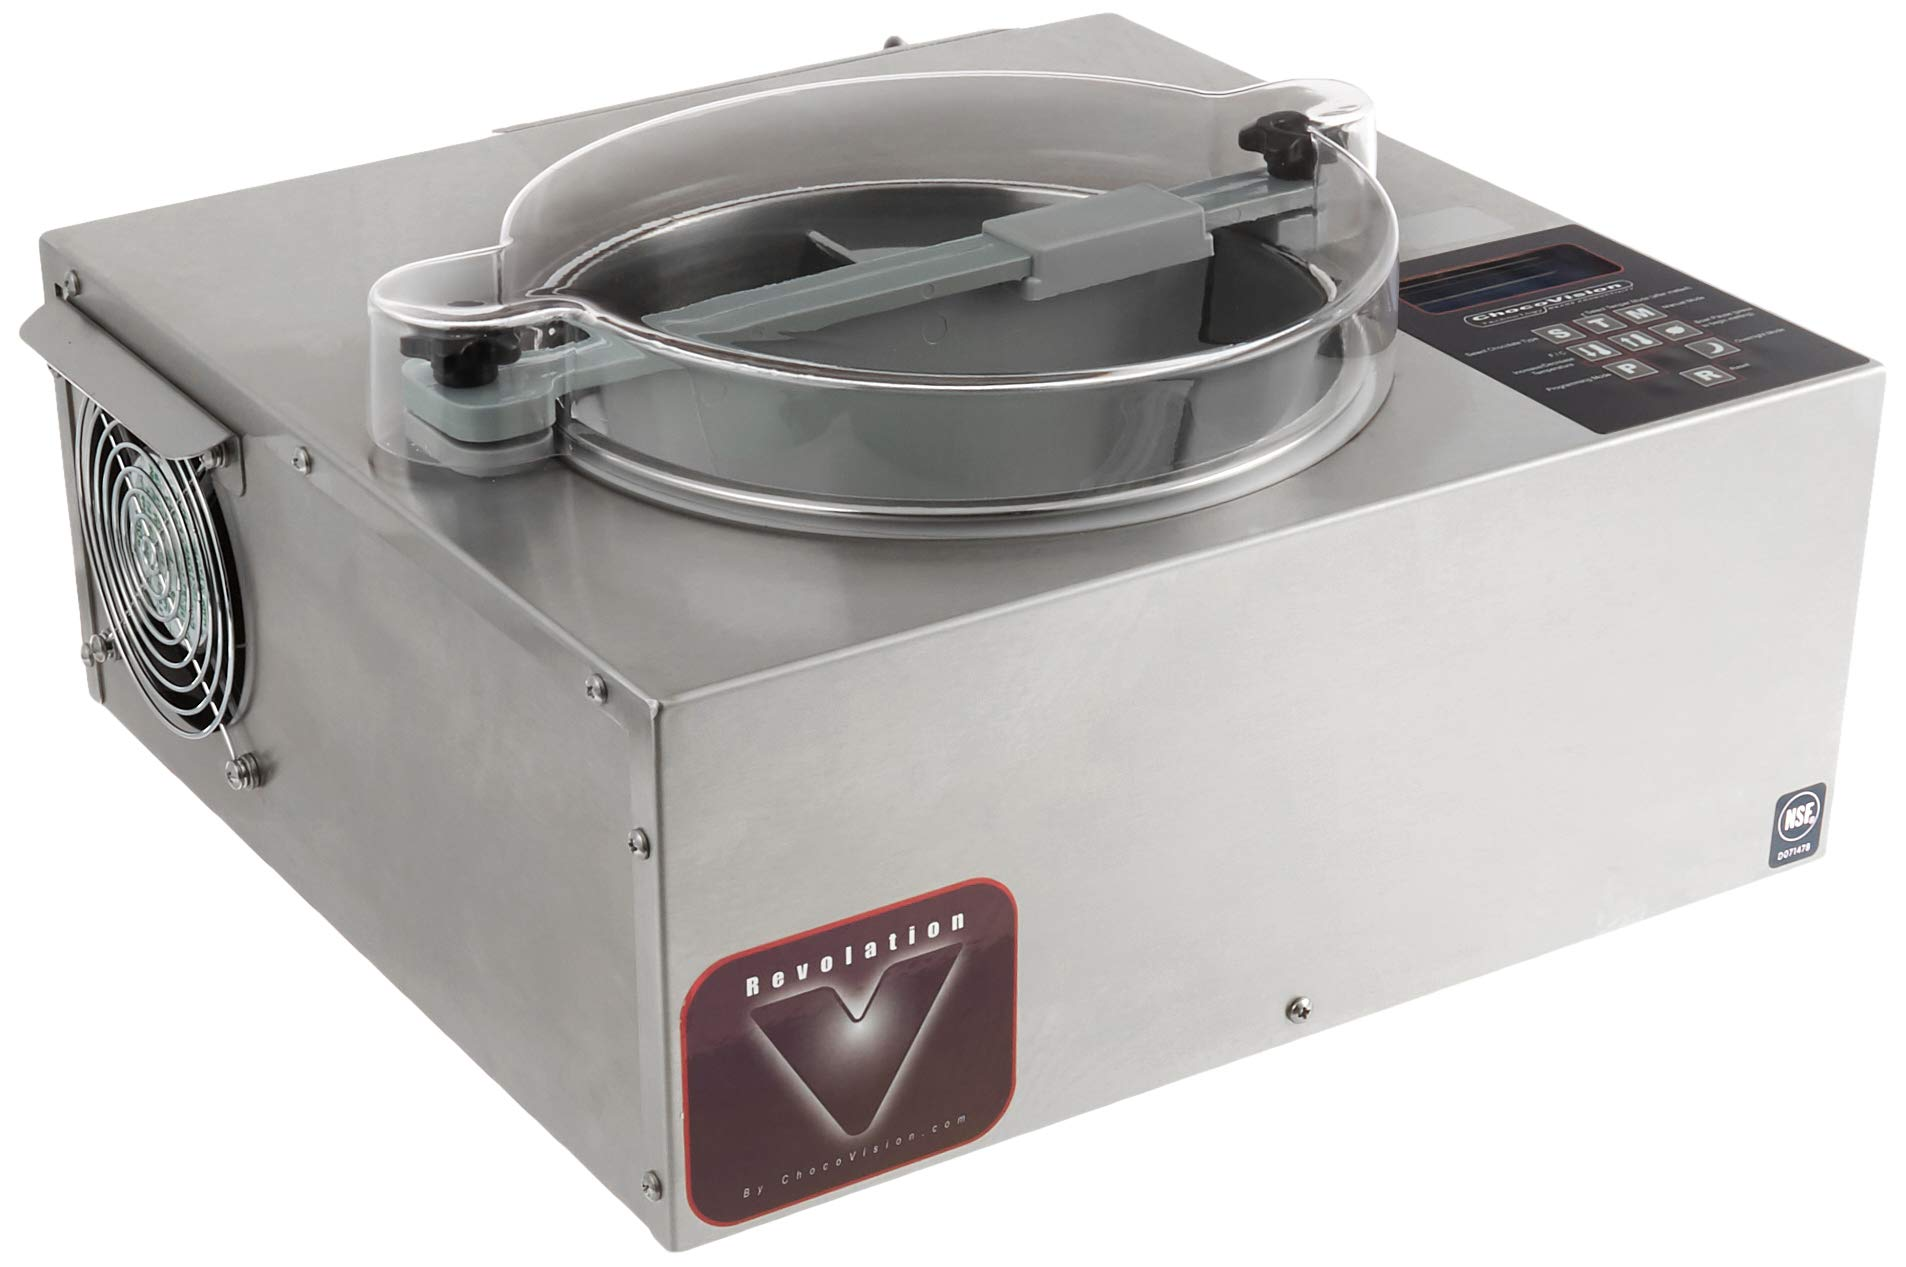 ChocoVision Revolation V Chocolate Tempering Machine, 9 lb. Capacity